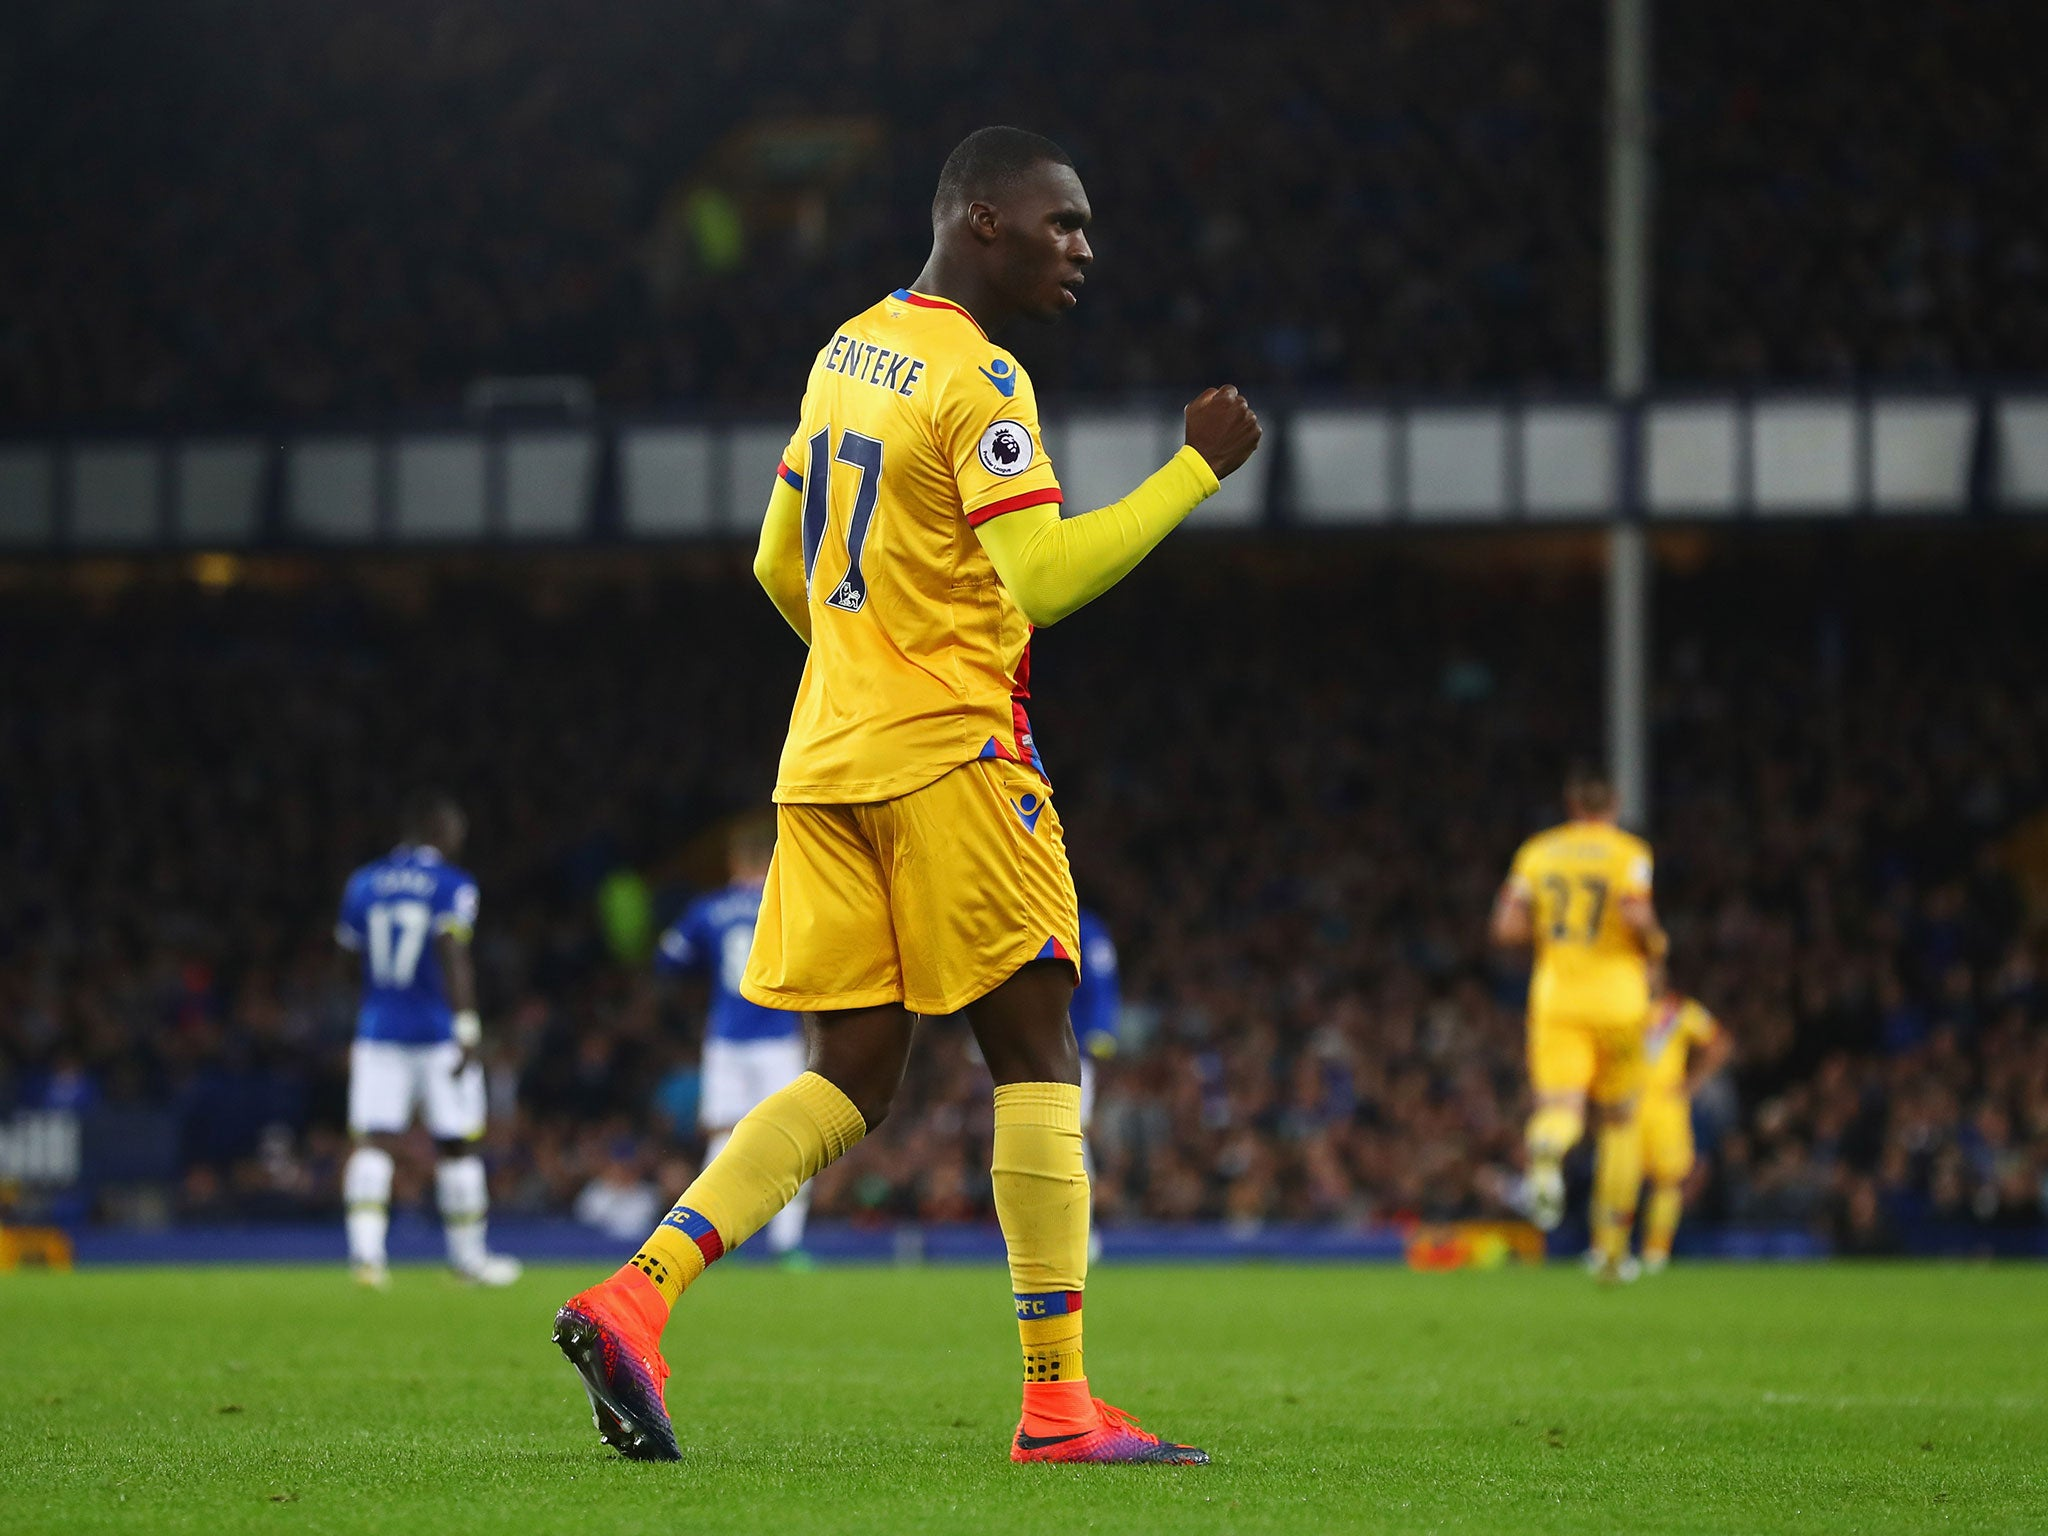 everton christian personals Dating offers shop garden tottenham 4 everton 0: while dele alli and christian eriksen bestrode the space between everton's midfield and defence as if.